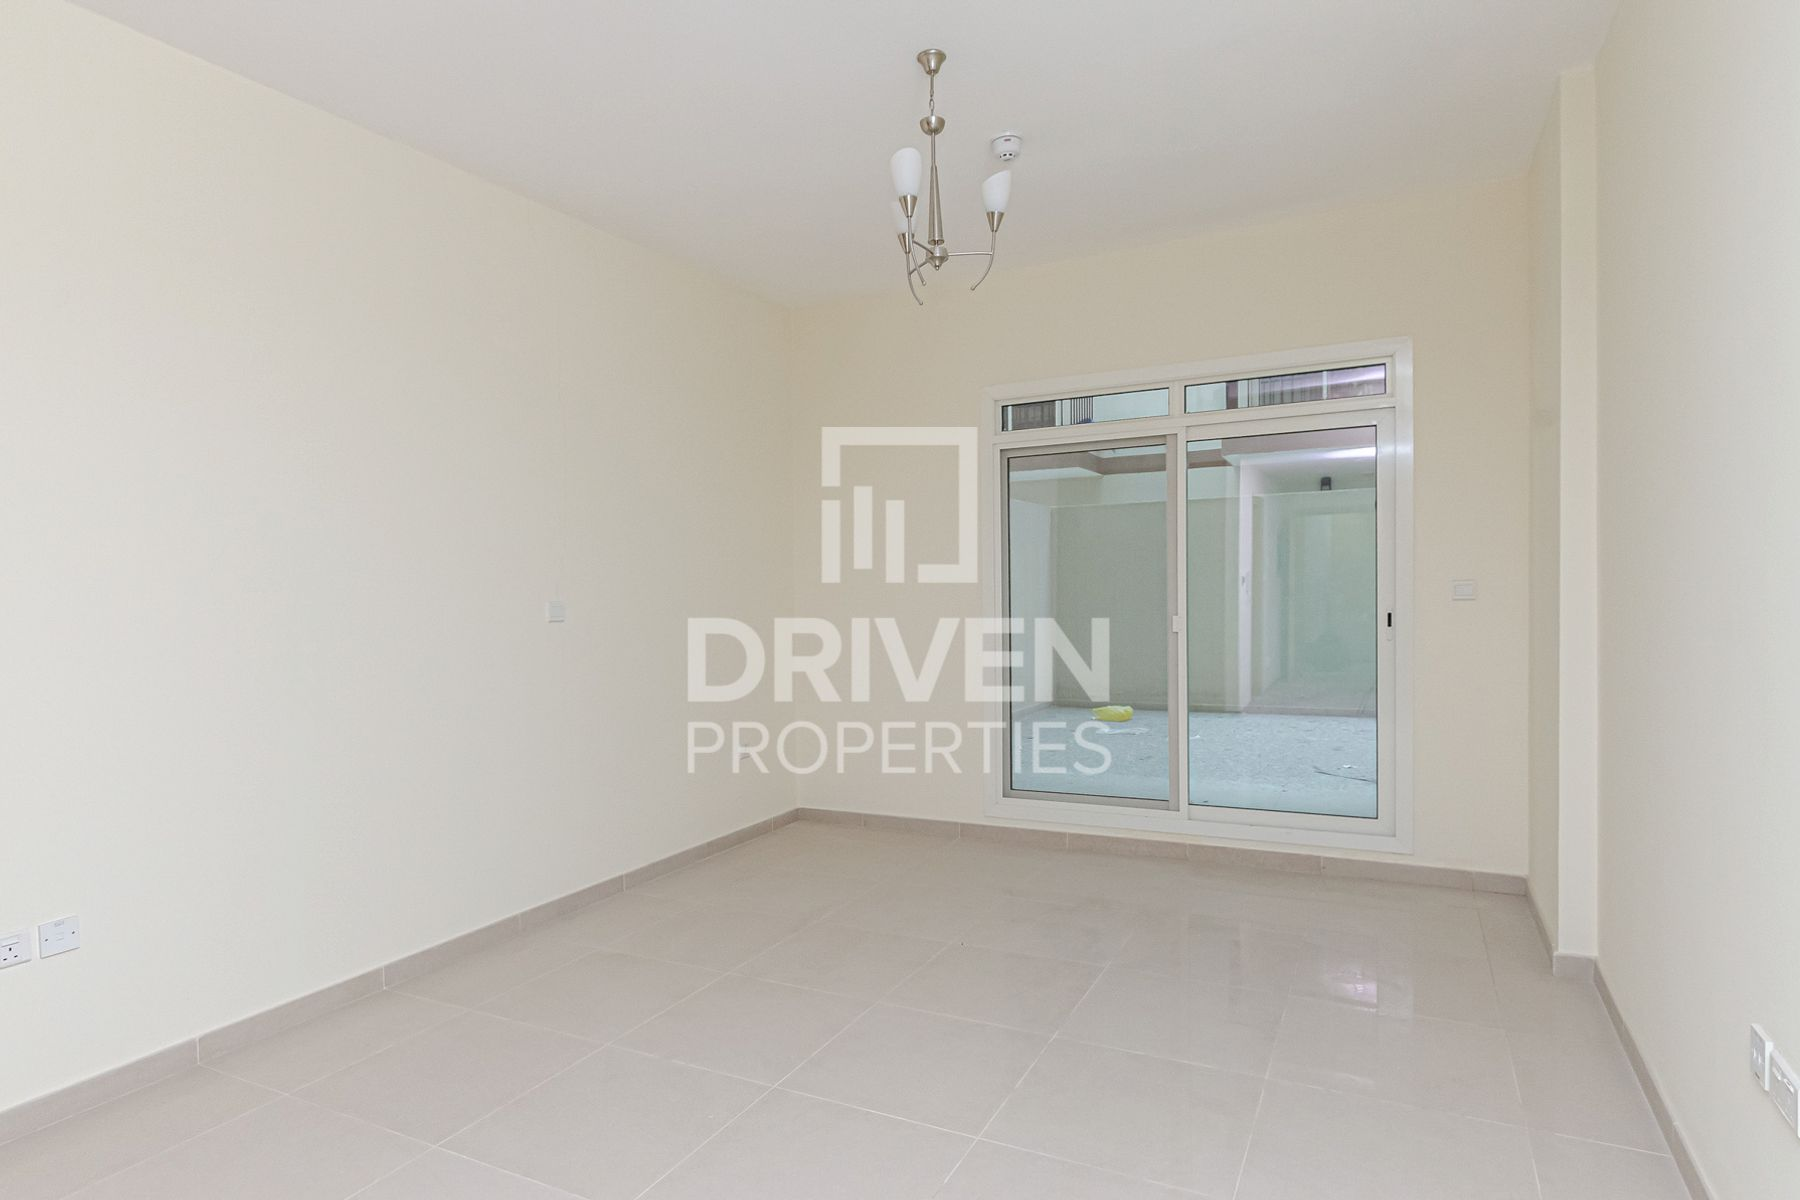 Studio for Rent in May Residence - Jumeirah Village Circle